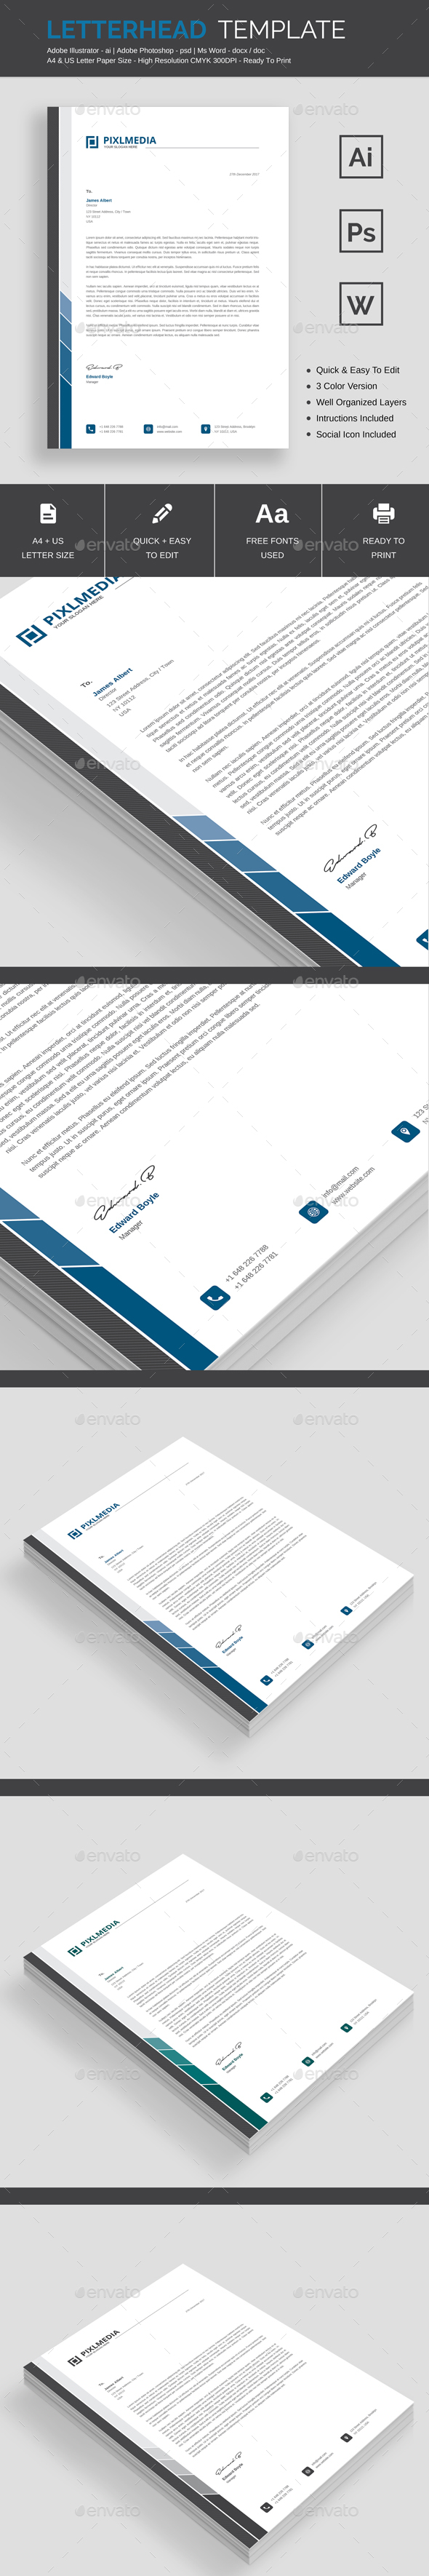 GraphicRiver Letterhead Template 21150078